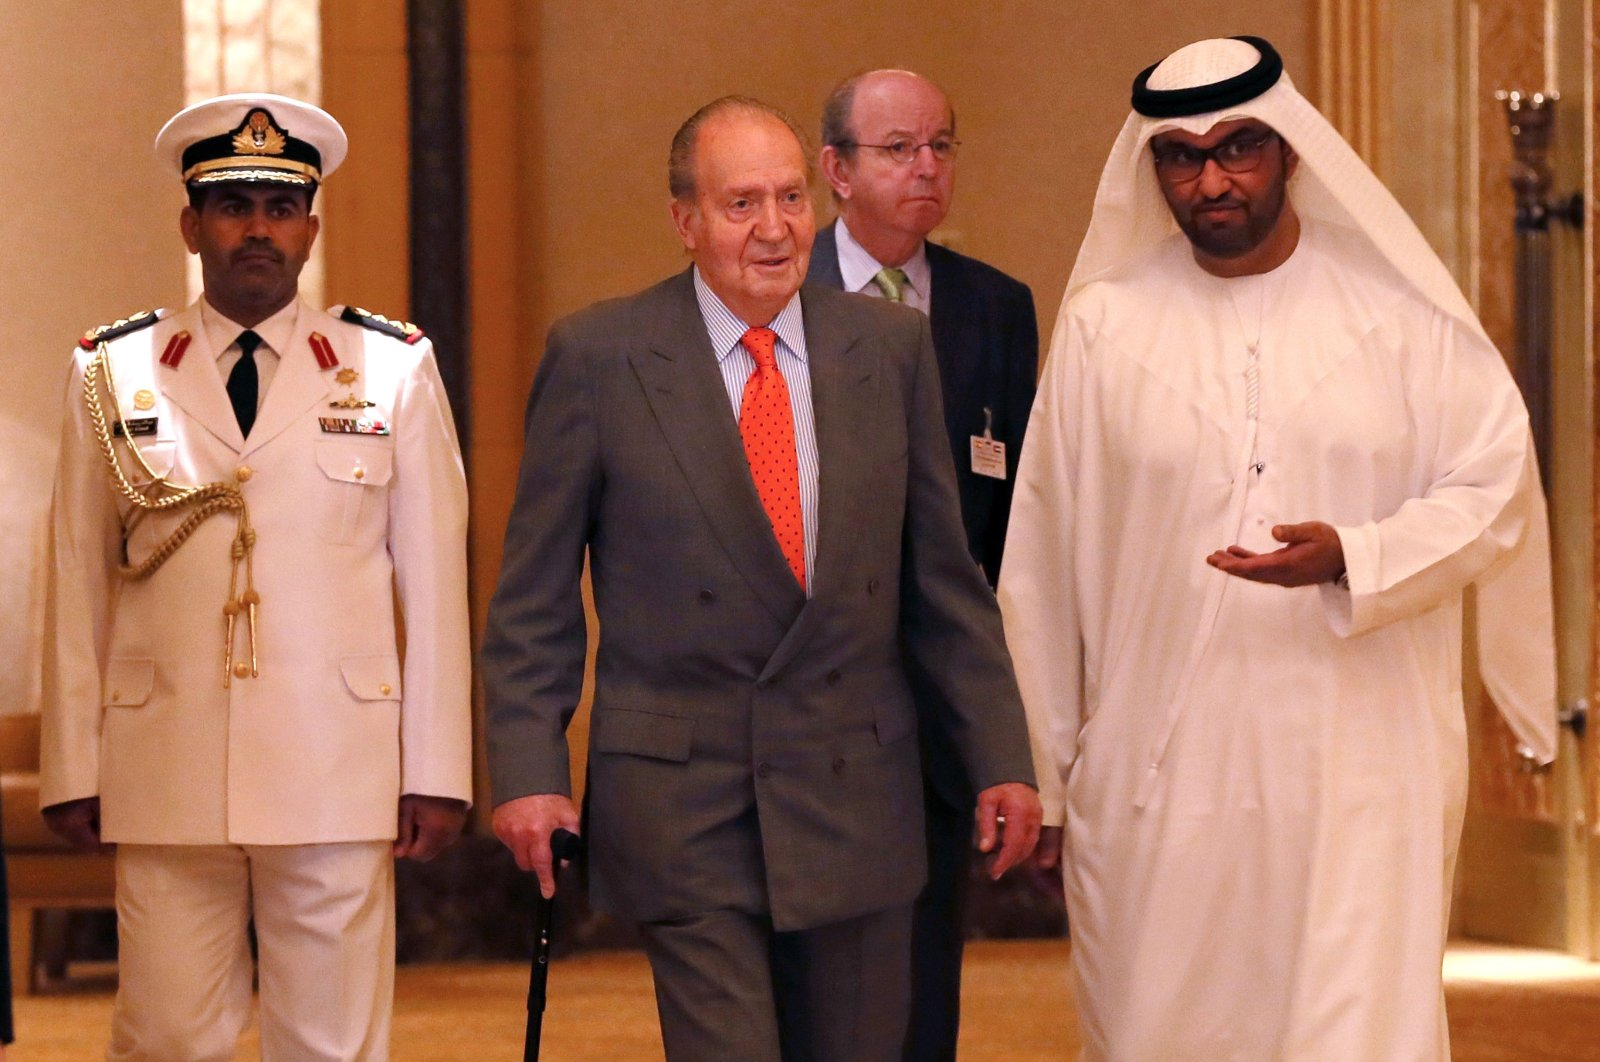 Spain's King Juan Carlos (C) is welcomed by State Minister and chief executive officer of the Abu Dhabi Future Energy Company (Masdar), Sultan Ahmed al-Jaber upon his arrival for a session of the first UAE-Spain Economic Forum at the Emirates Palace hotel in Abu Dhabi, United Arab Emirates, April 14, 2014. (AFP Photo)